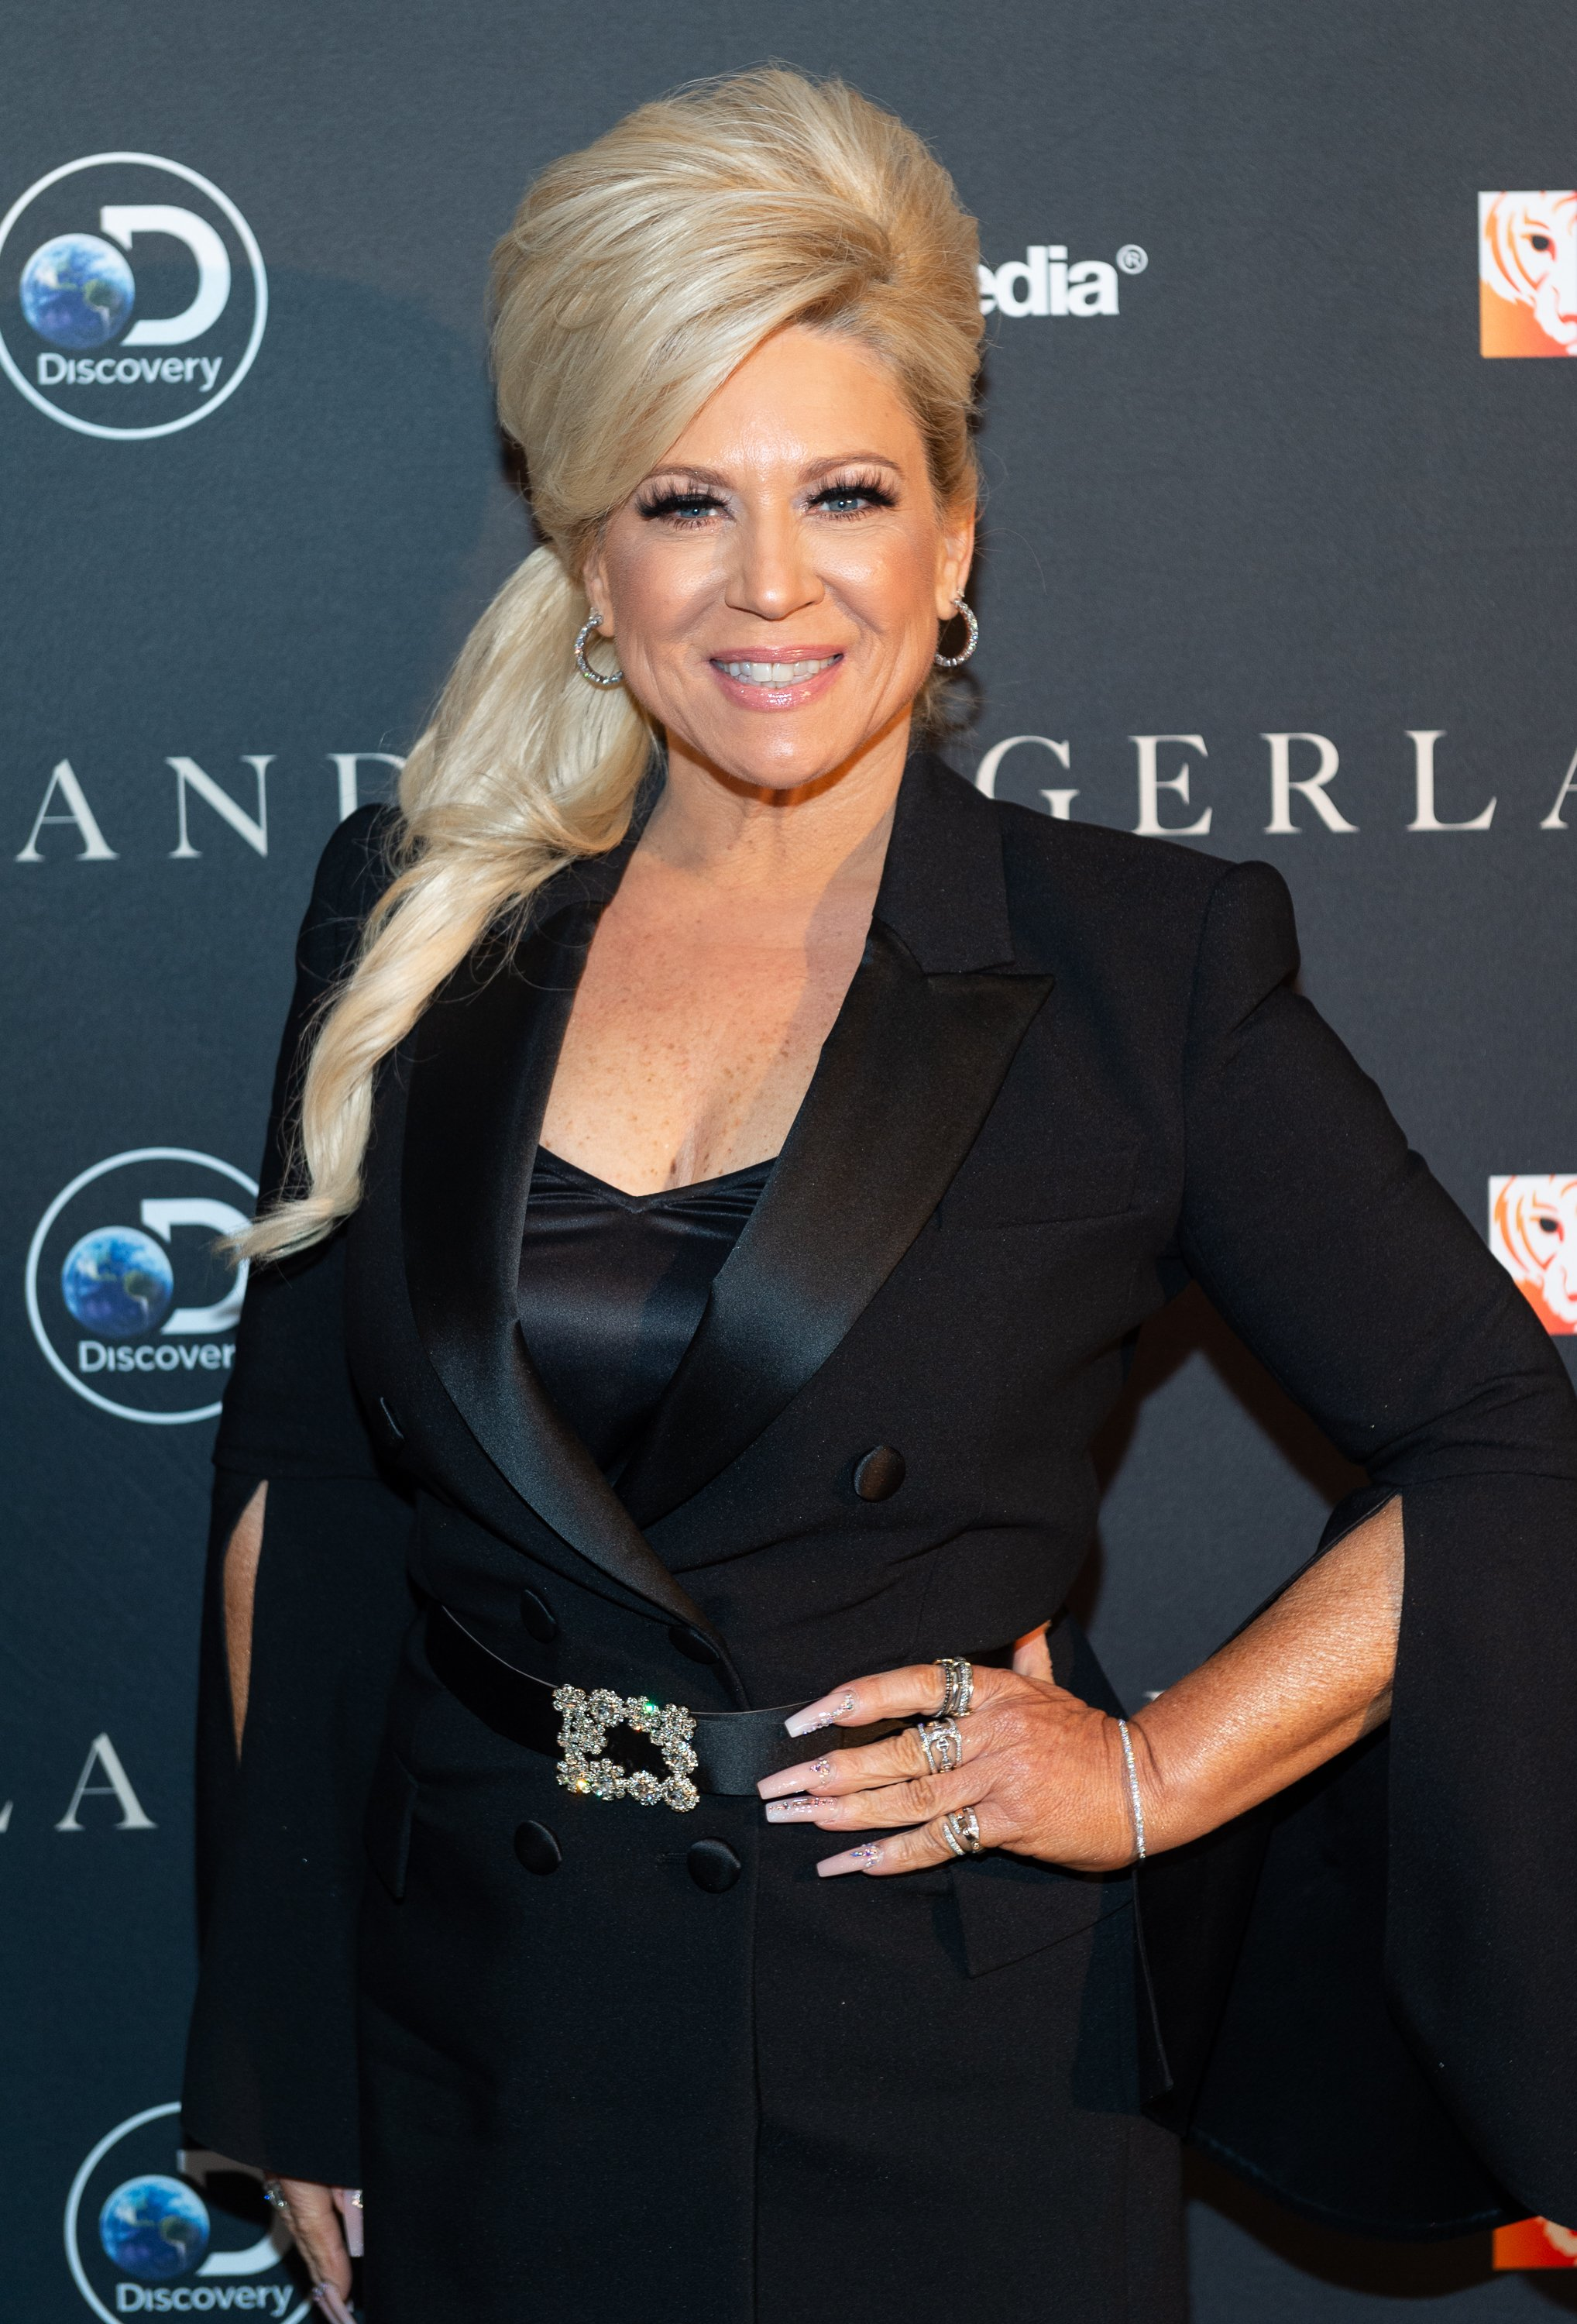 Theresa Caputo at Crosby Street Hotel on March 27, 2019 in New York City | Photo: Getty Images